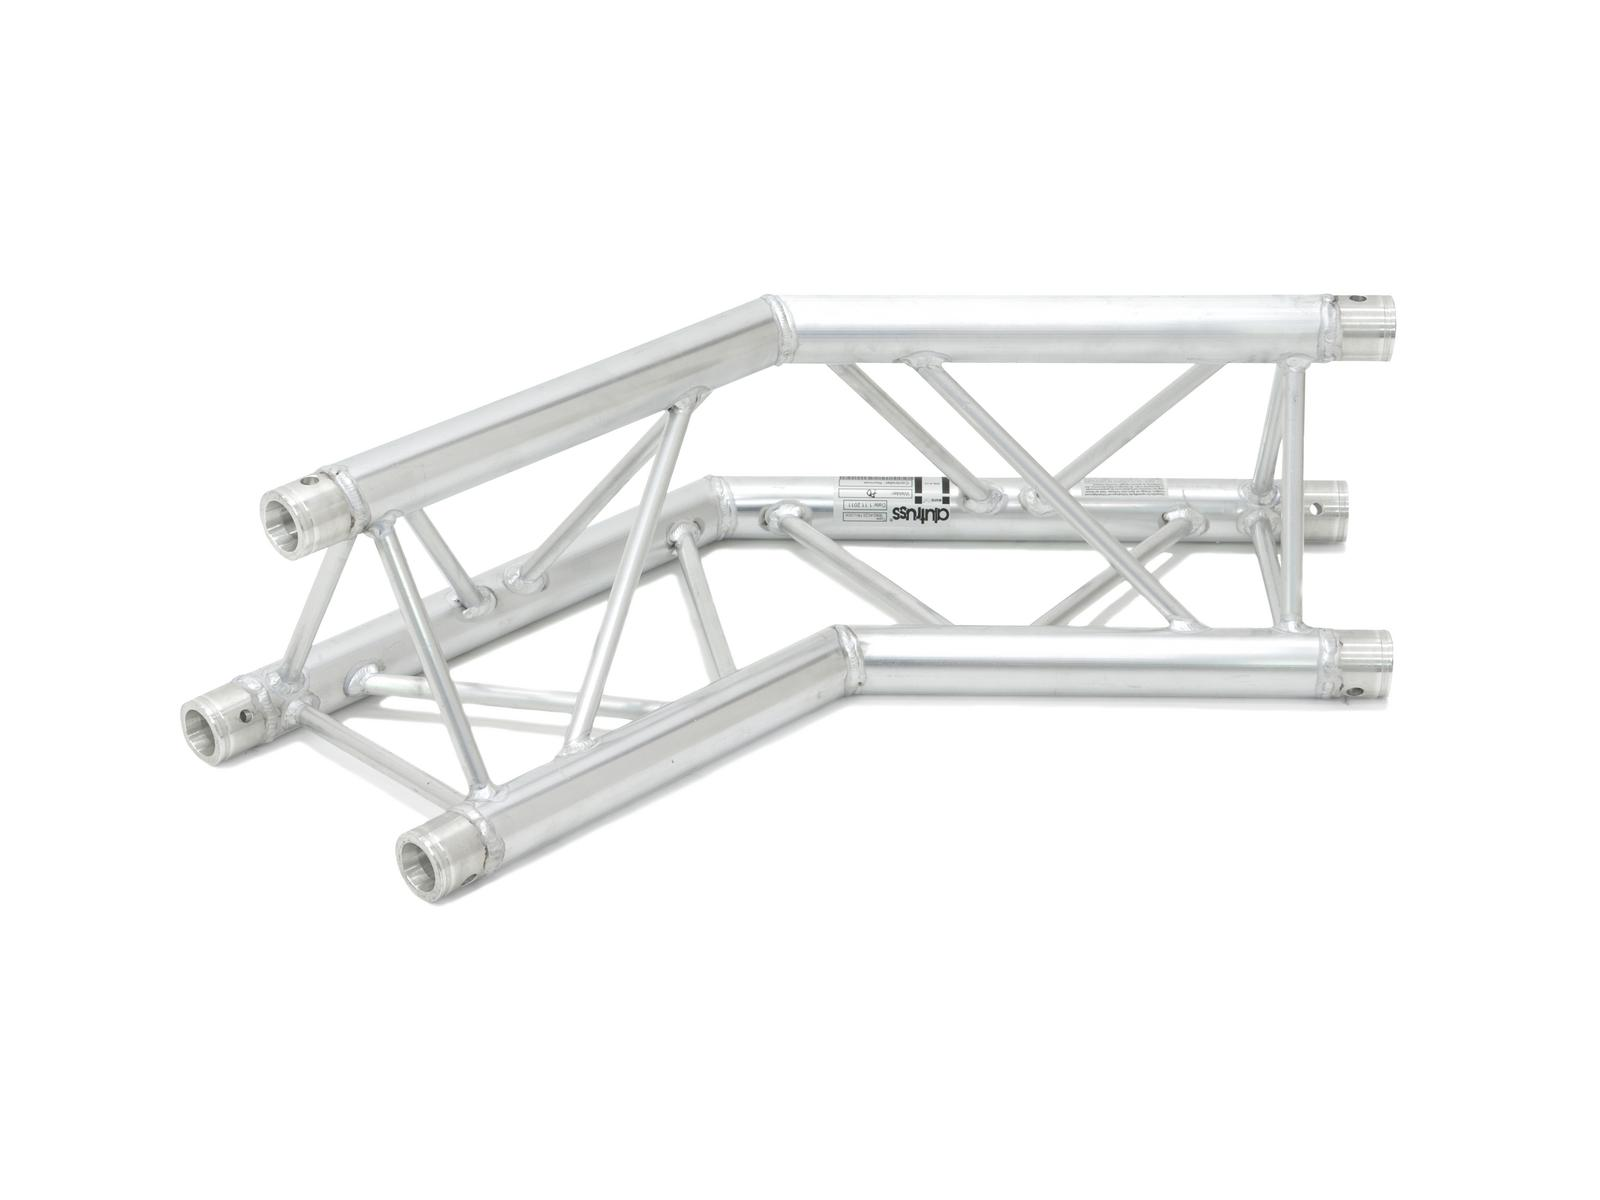 ALUTRUSS TRILOCK E-GL33 C-23 2